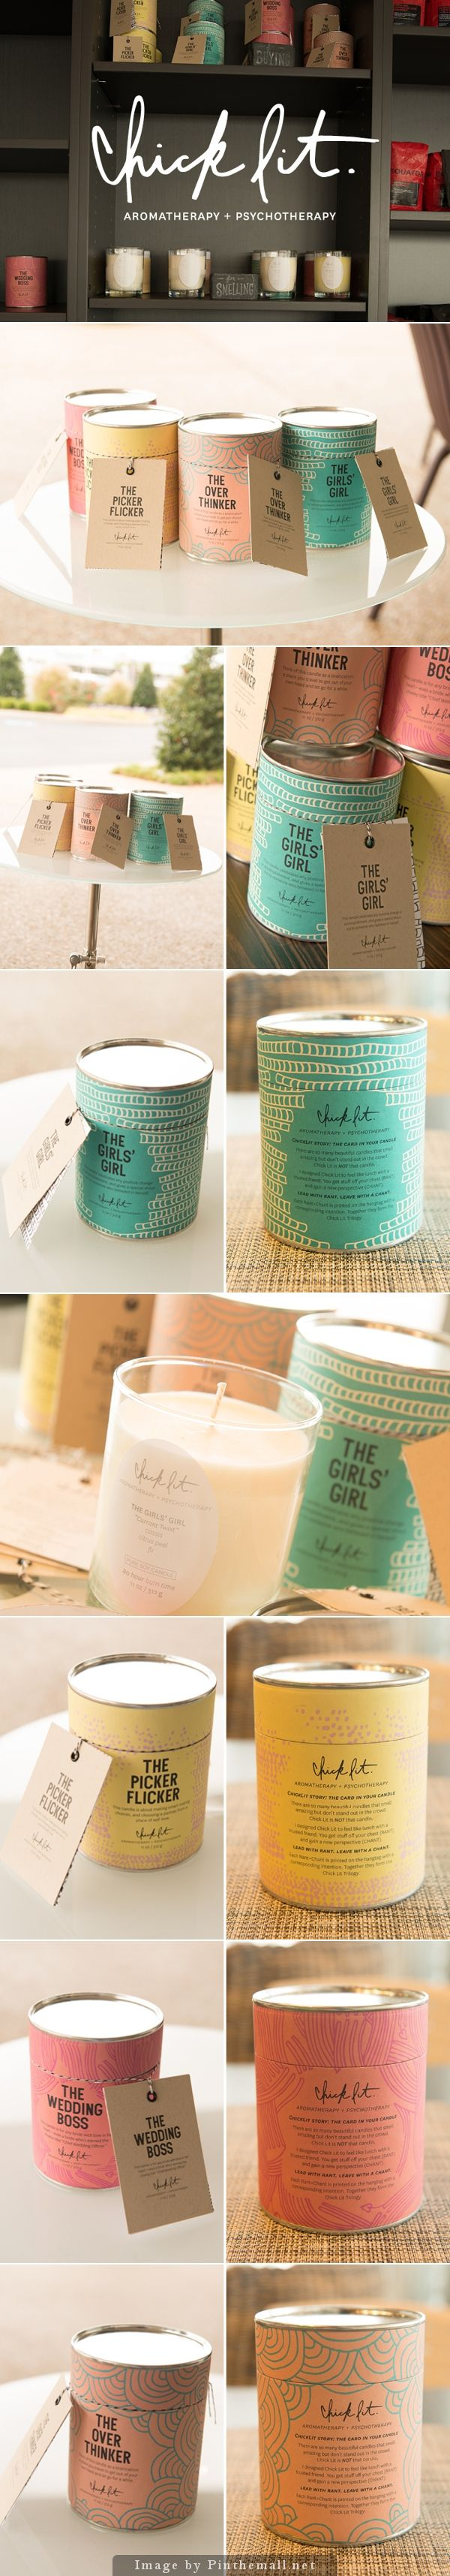 Chick Lit Candles by Morgan Stern. I love these fun colors and the simple. Brilliant Packaging Design examples for your inspiration this week // Introducing @moirestudiosjkt a thriving website and graphic design studio. Feel Free to Follow us @moirestudiosjkt to see more #outstanding pins like this. #packaging #graphicDesign